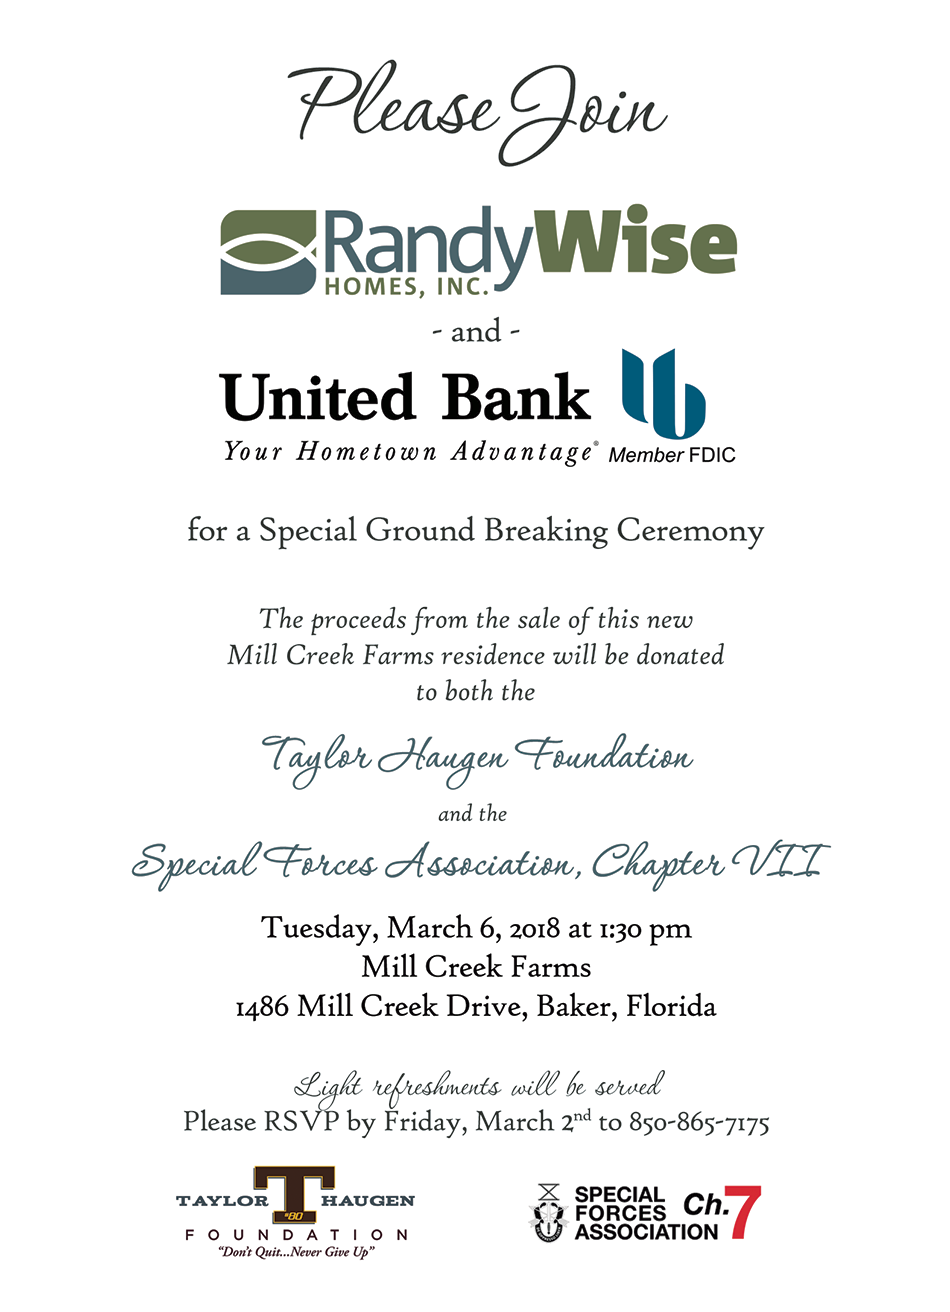 Event invitation - Please join Randy Wise Homes and United Bank for a special ground breaking ceremony. The proceeds from the sale of this new Mill Creek Farms residence will be donated to both the Taylor Haugen Foundation and the Special Forces Association, Chapter VII. Tuesday, March 6, 2018 at 1:30 pm - Mill Creek Farms - 1486 Mill Creek Drive, Baker Florida. Light refreshments will be served. Please RSVP by Friday, March 2nd to 850-865-7175